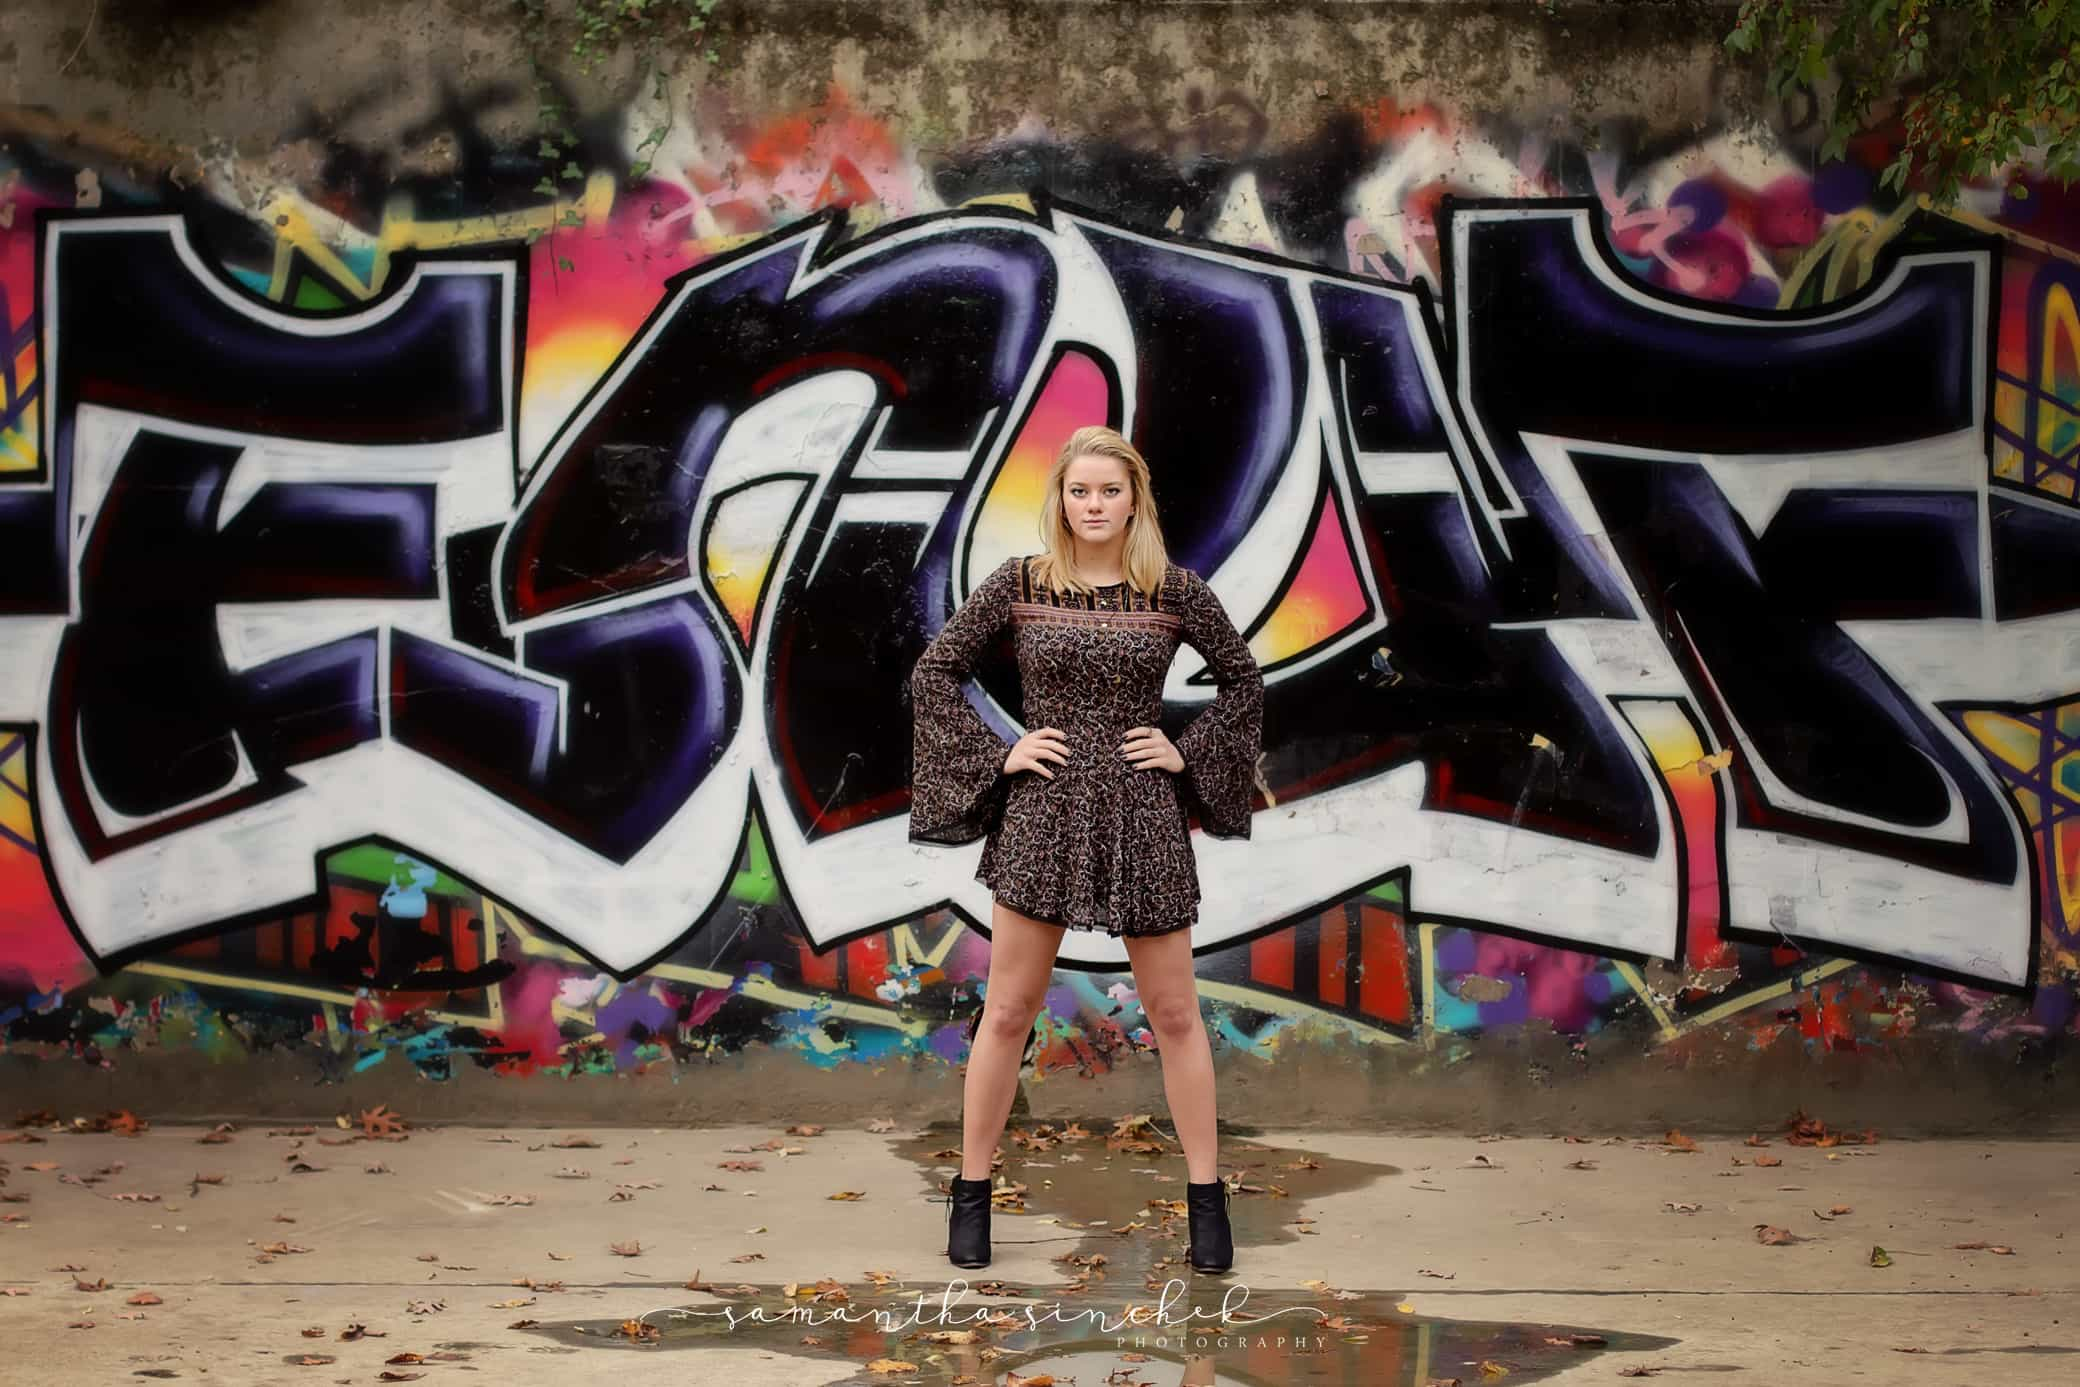 Mason Ohio senior stands with hands on hips in front of cool graffiti